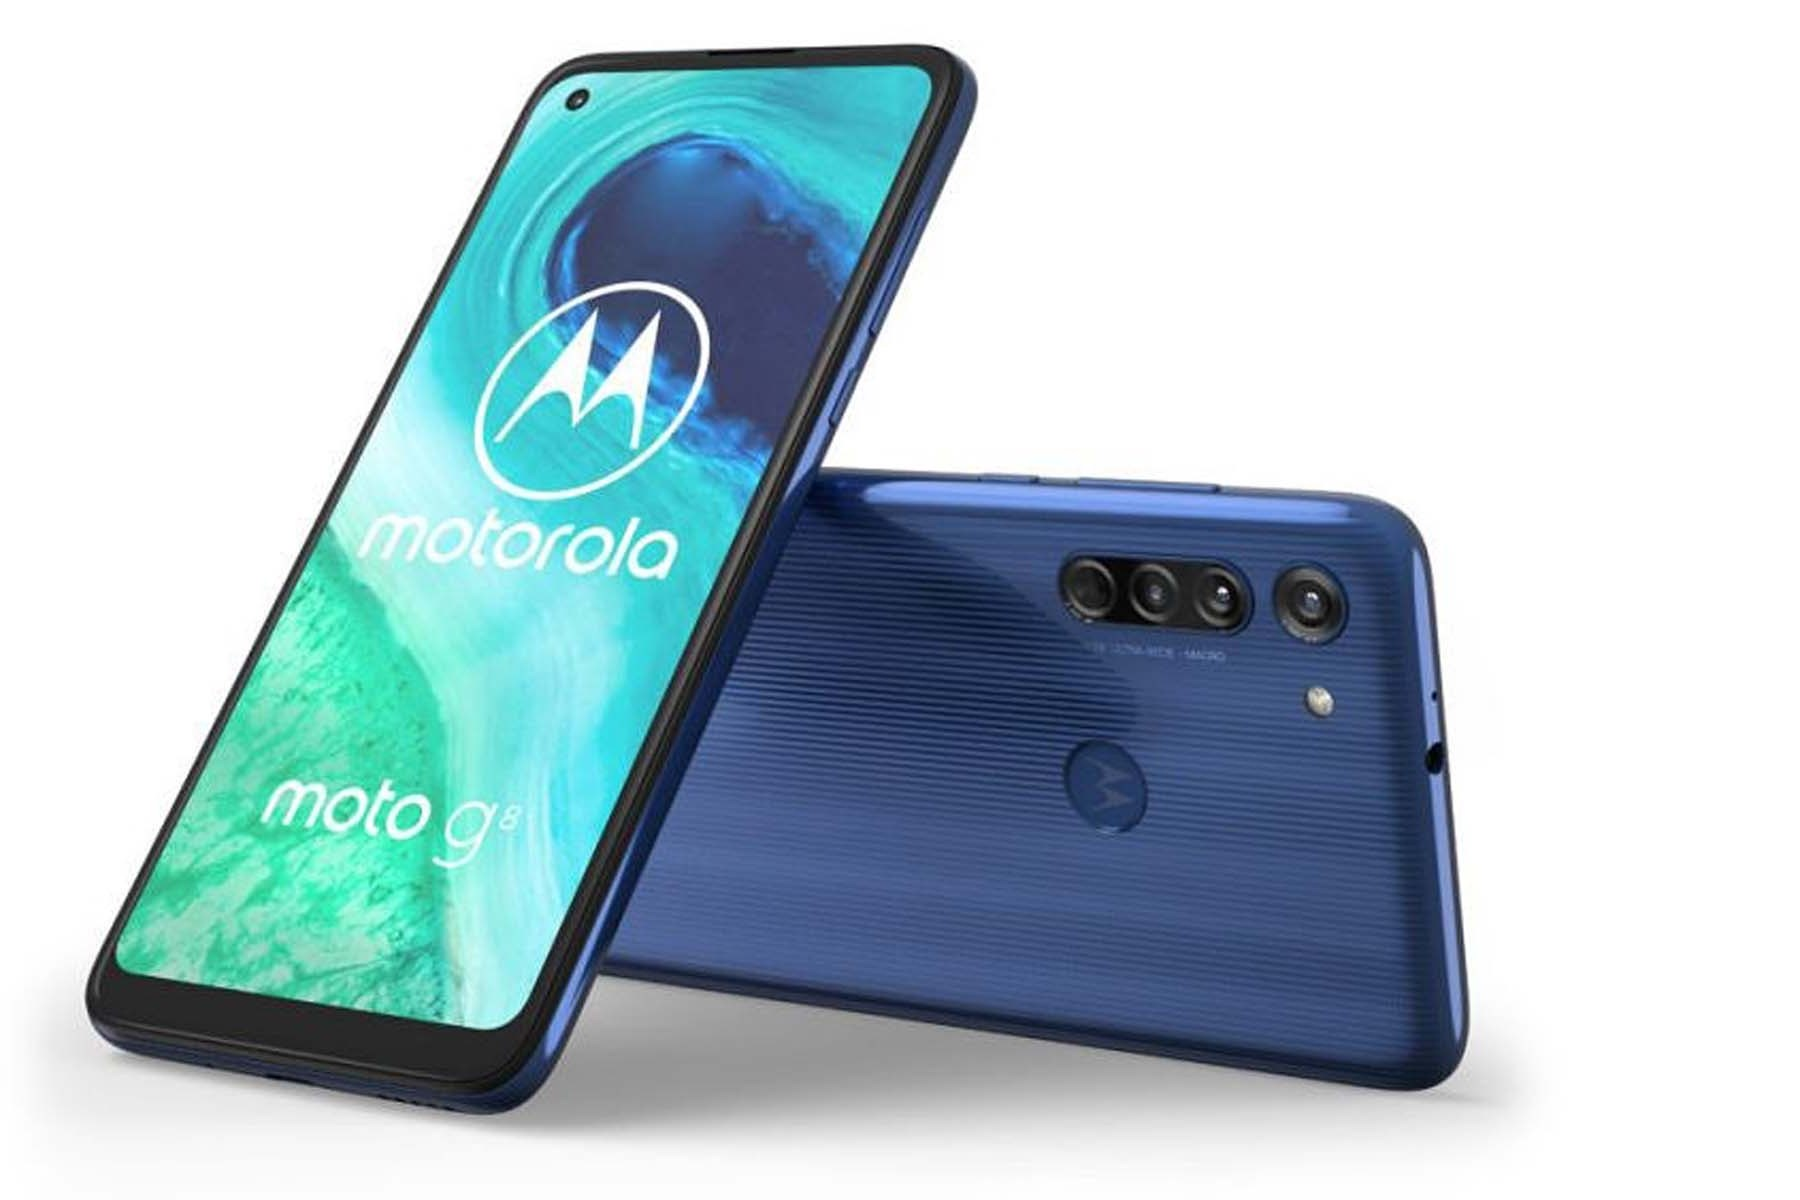 Motorola Moto G8 is with triple rear cameras and Snapdragon 665